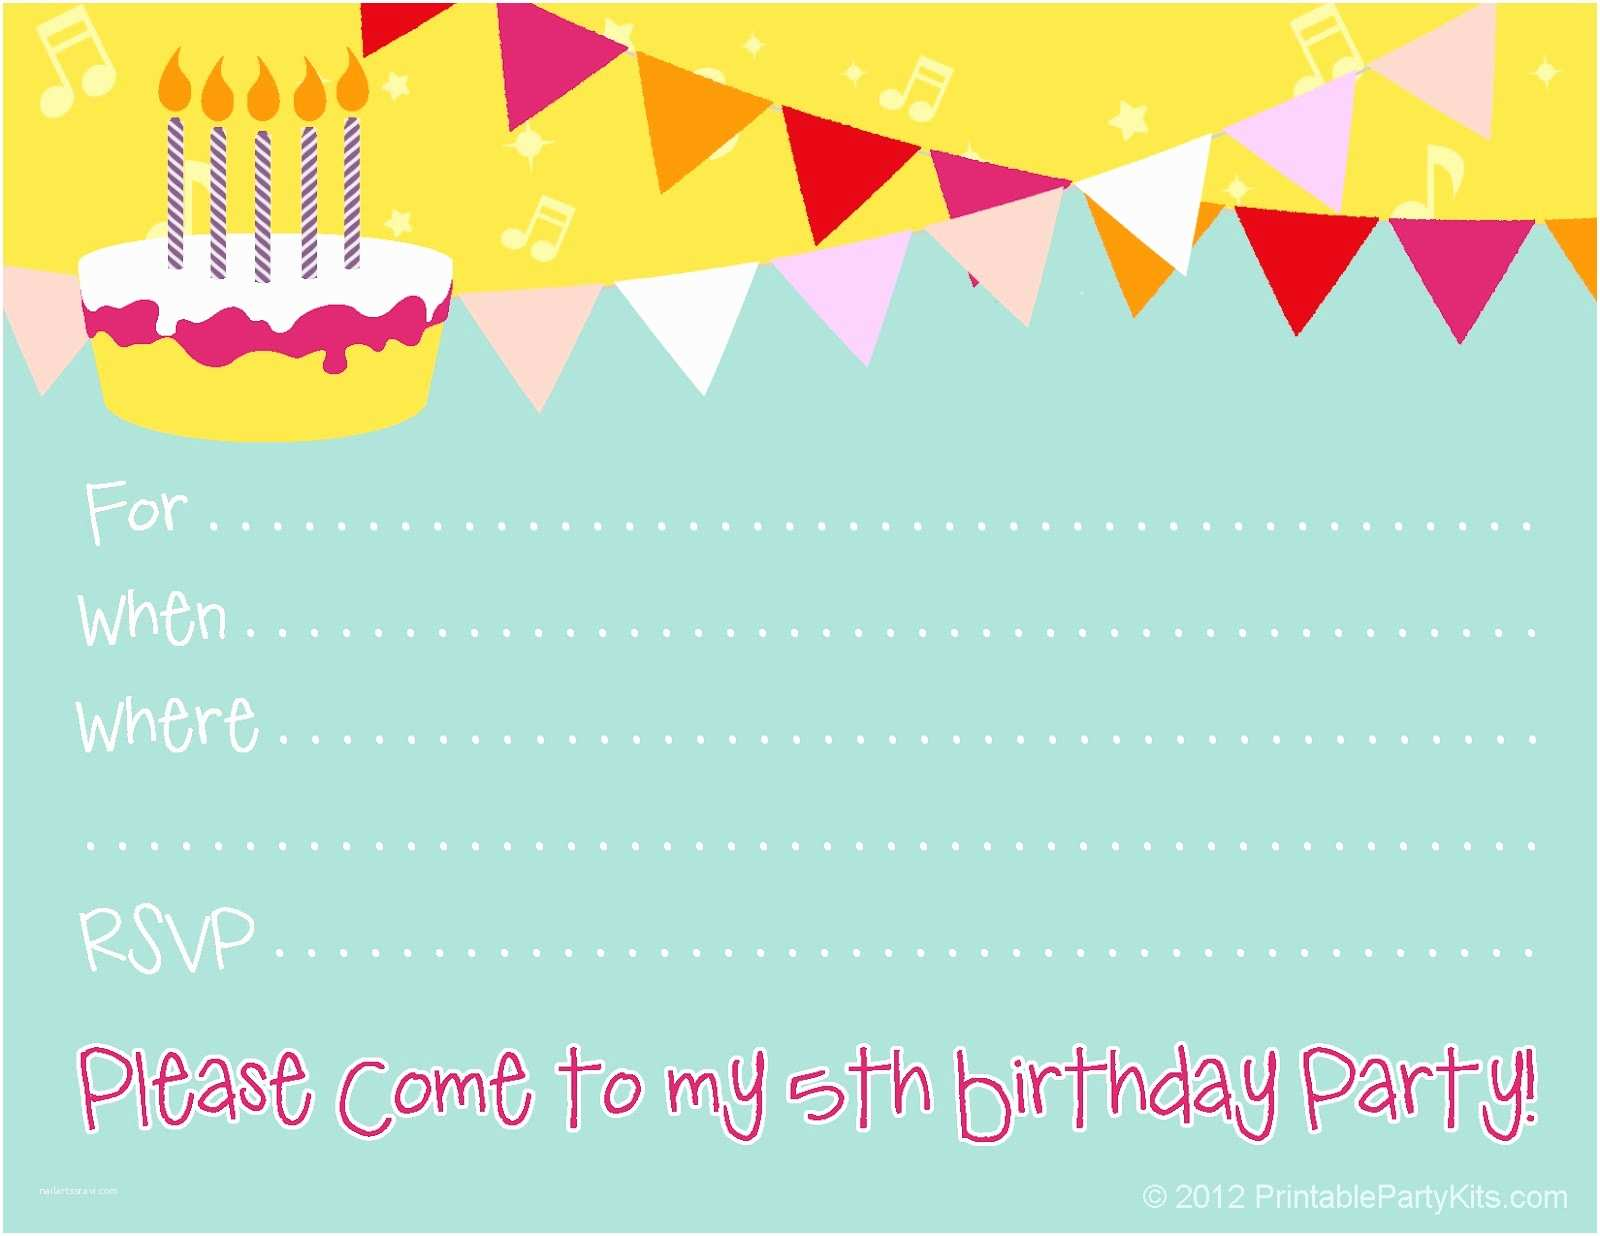 Birthday Party Invitations Free Birthday Party Invitations for Girl – Bagvania Free